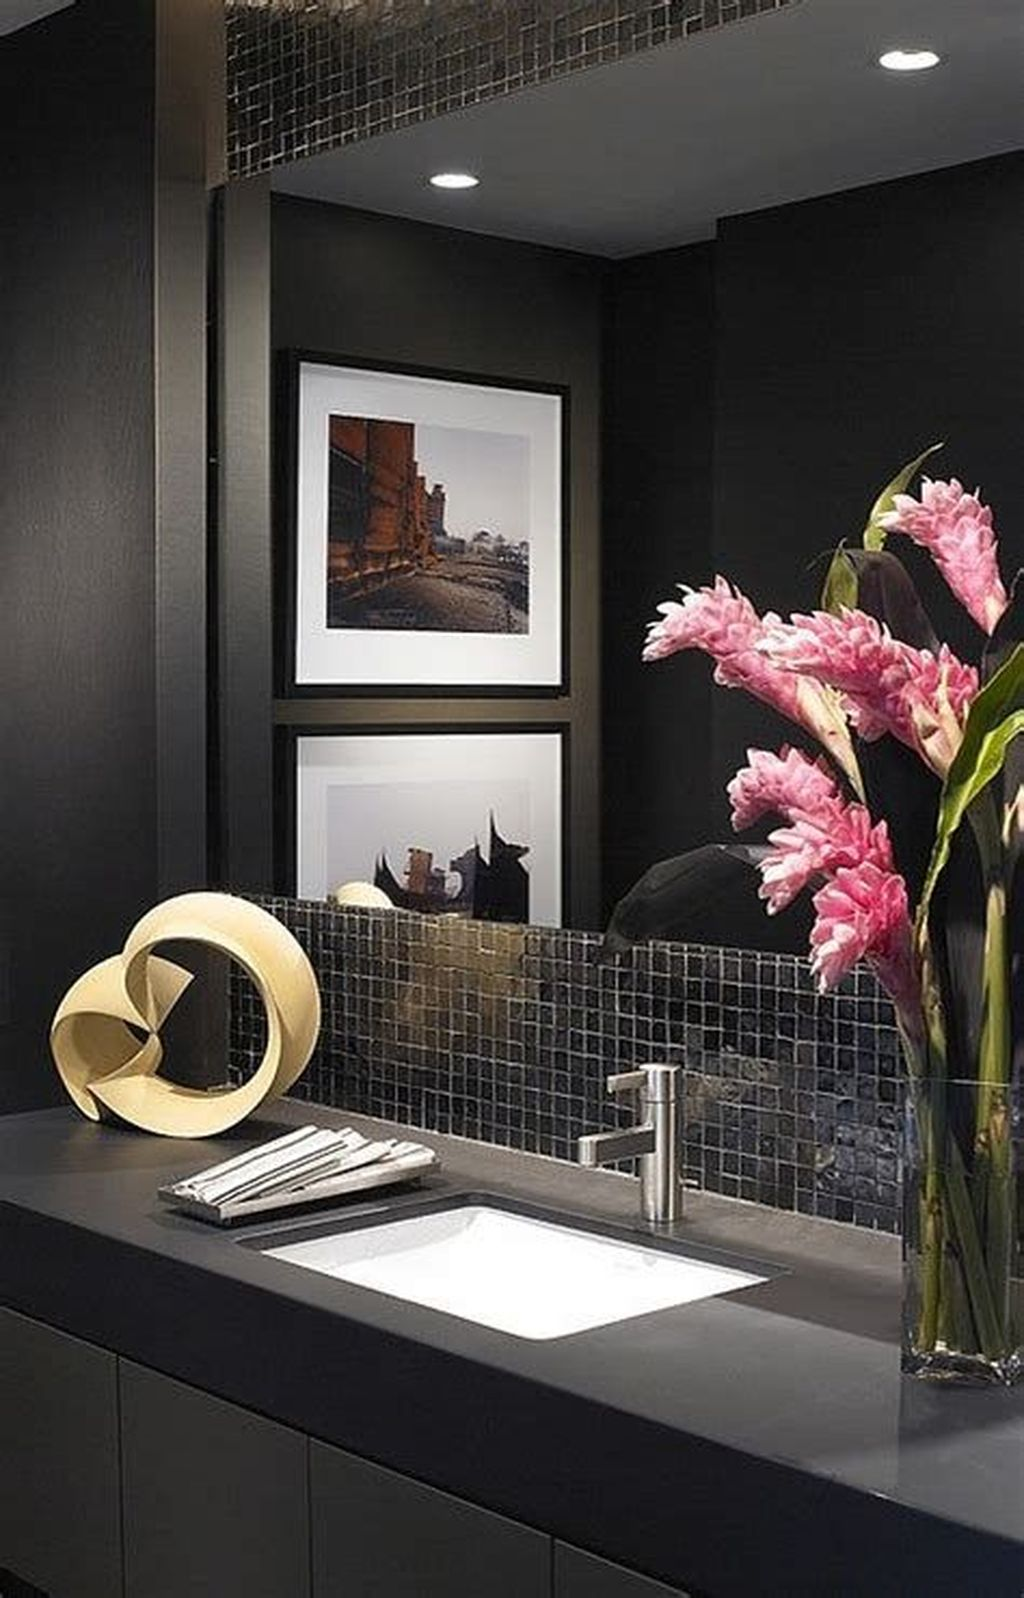 Inspiring Black Powder Room Design Ideas With Modern Style 21